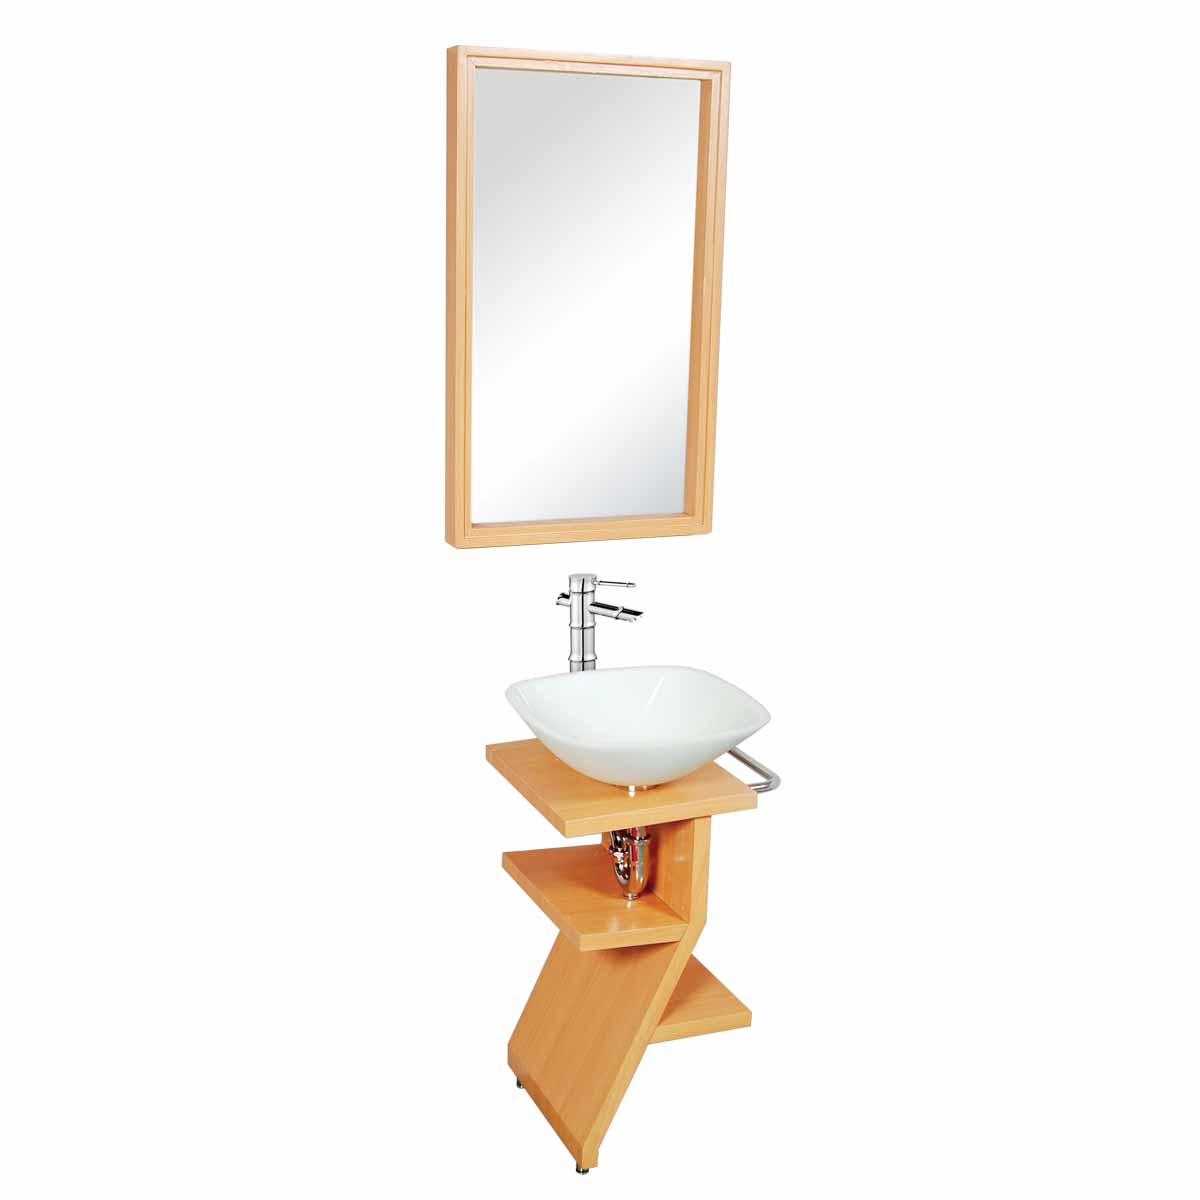 Bathroom Sink With Stand : Bathroom Milky Glass Pedestal Sink Wood Stand Towel Bar